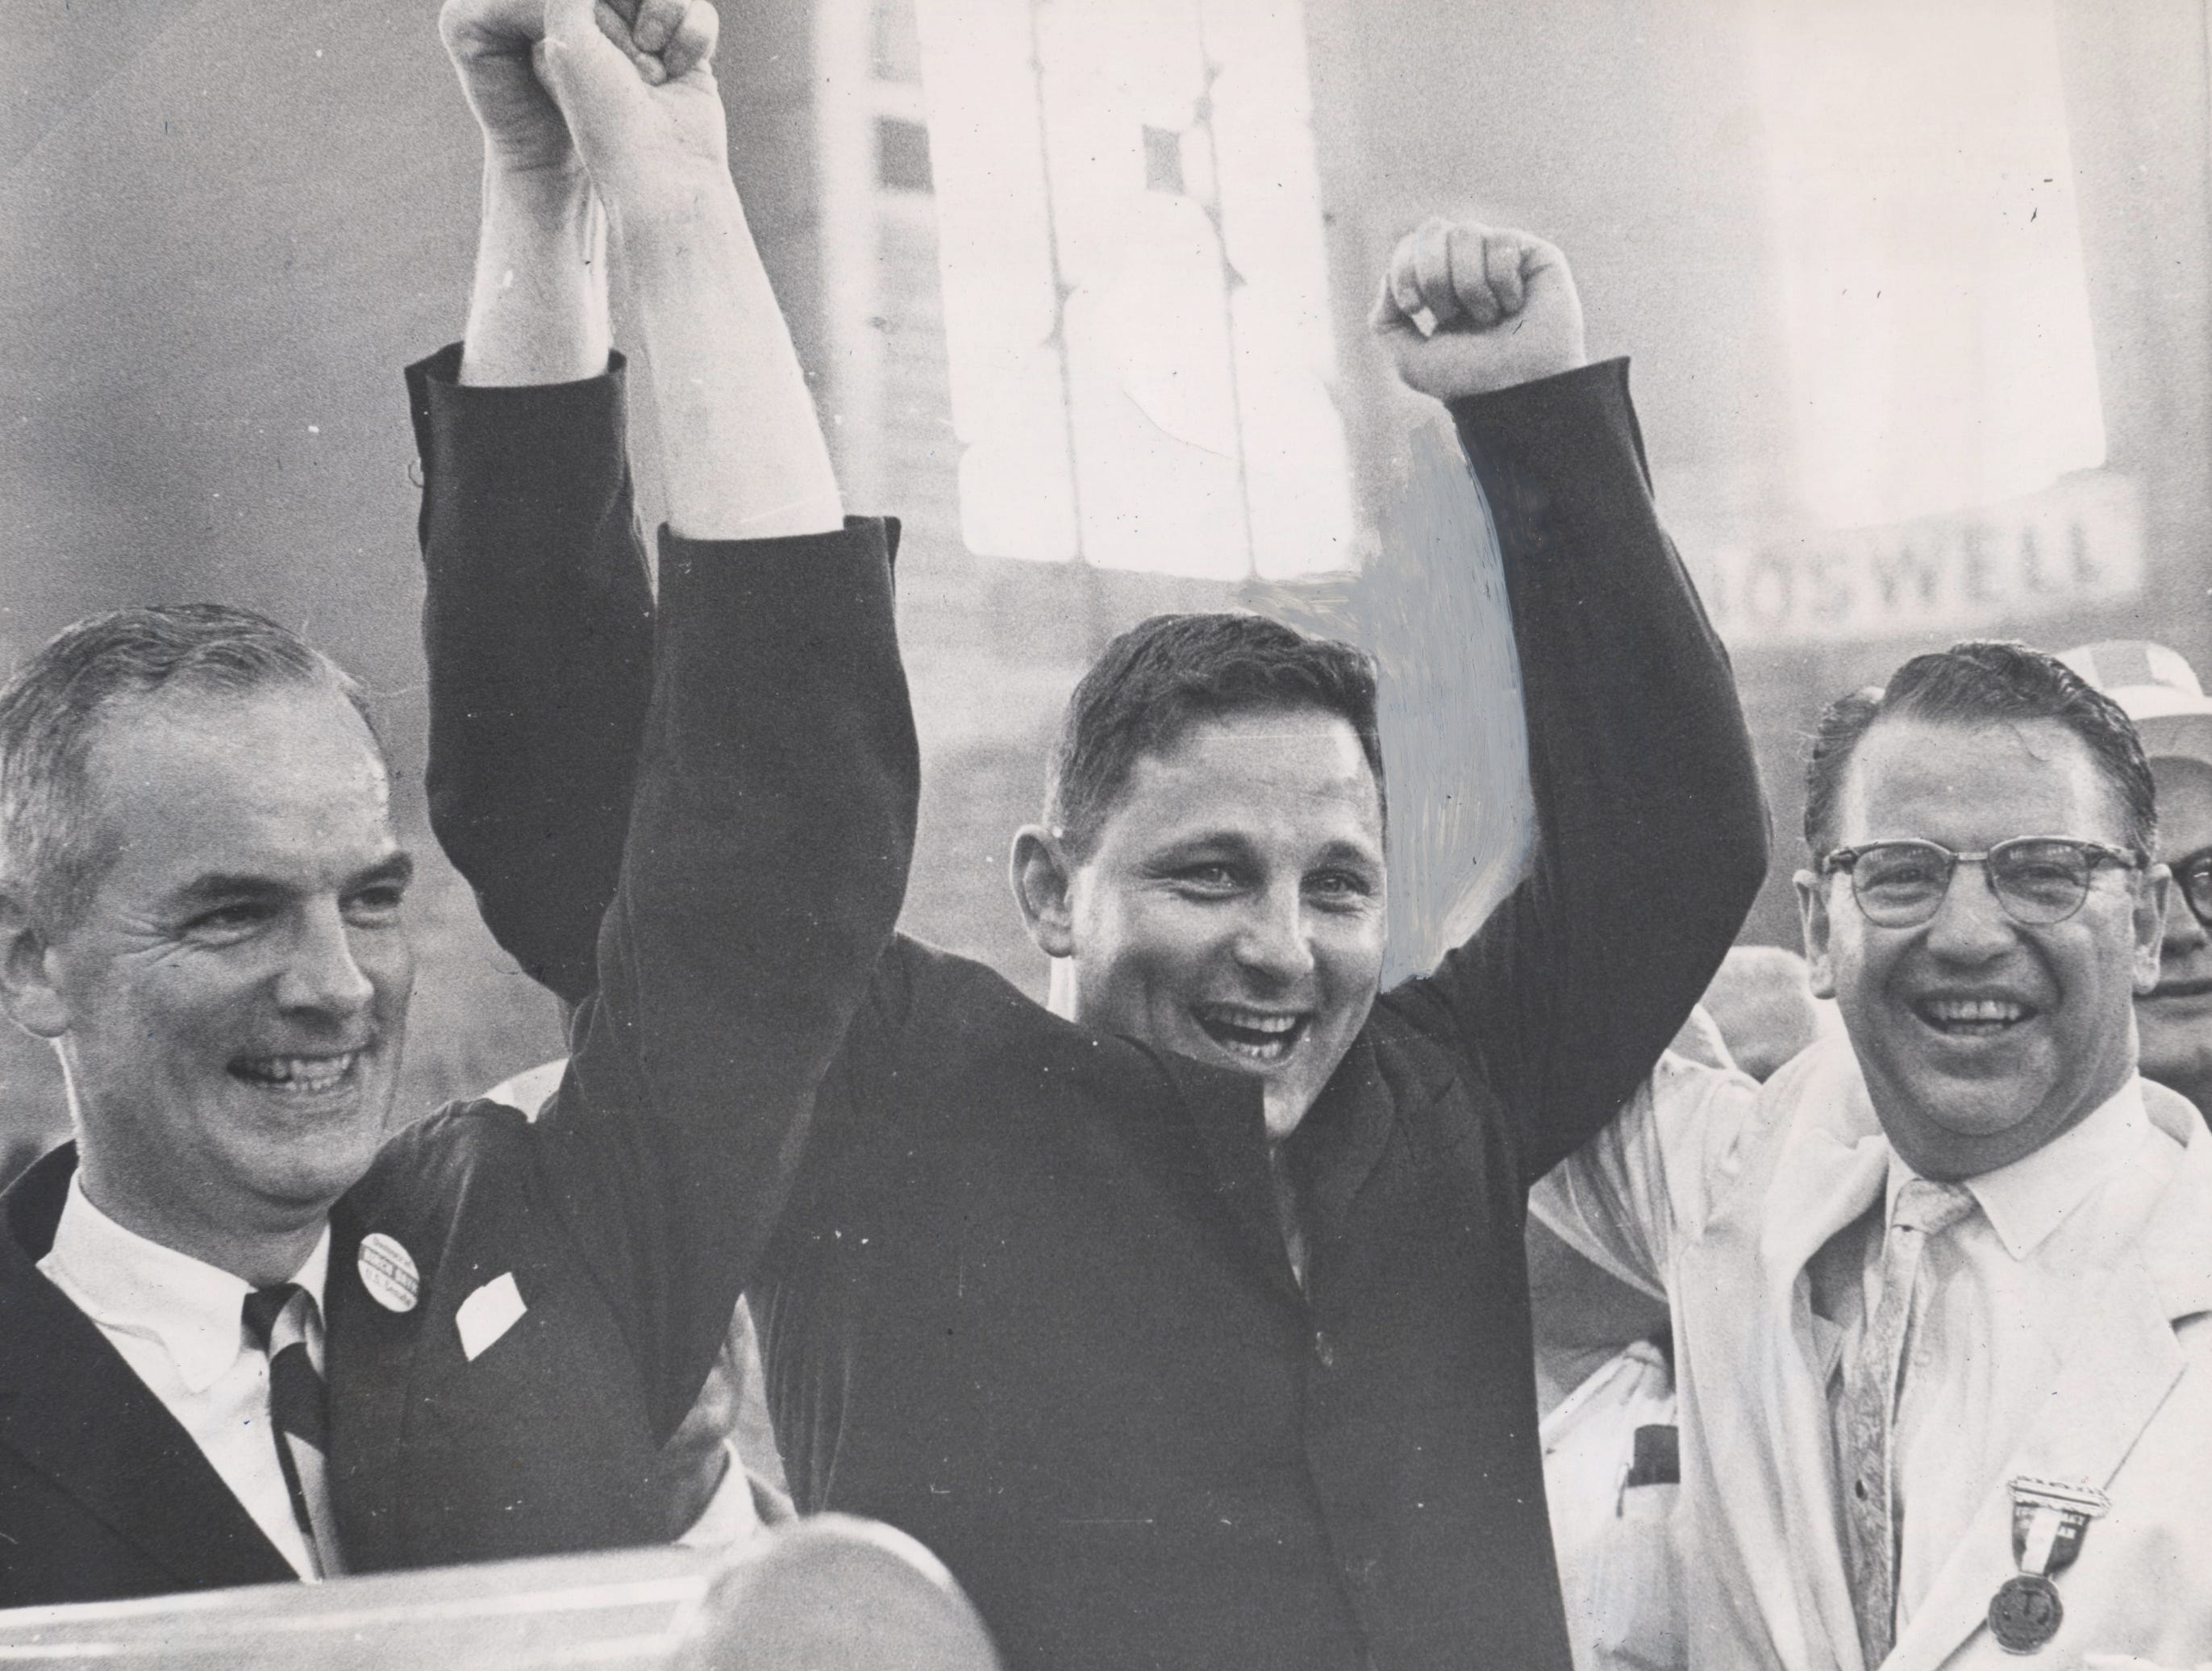 Indianapolis-Indiana Governor Matthew Welsh, left and U.S. Senator Vance Hartke, right, hoist arms of Birch Bayh Jr. after he received U.S. nomination at the Democrat State Convention in Indianapolis (06/22/1962)